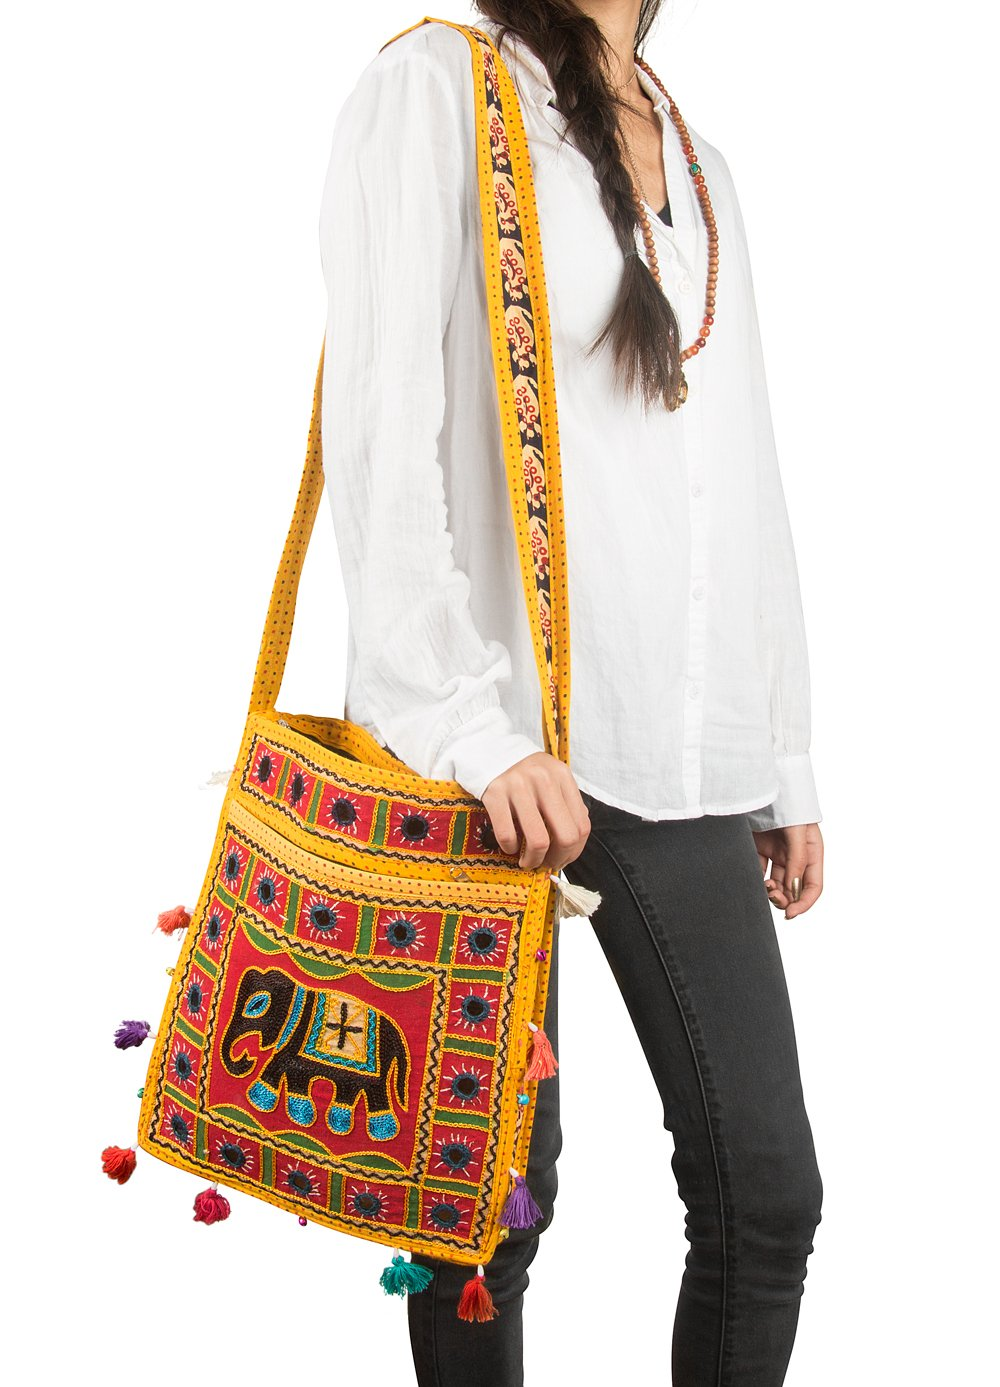 Tribe Azure Hobo Cross Body Elephant Messenger Shoulder Bag Mirror Embroidered Roomy Women Purse Tote Colorful Casual Everyday Hippie Boho (Mustard)